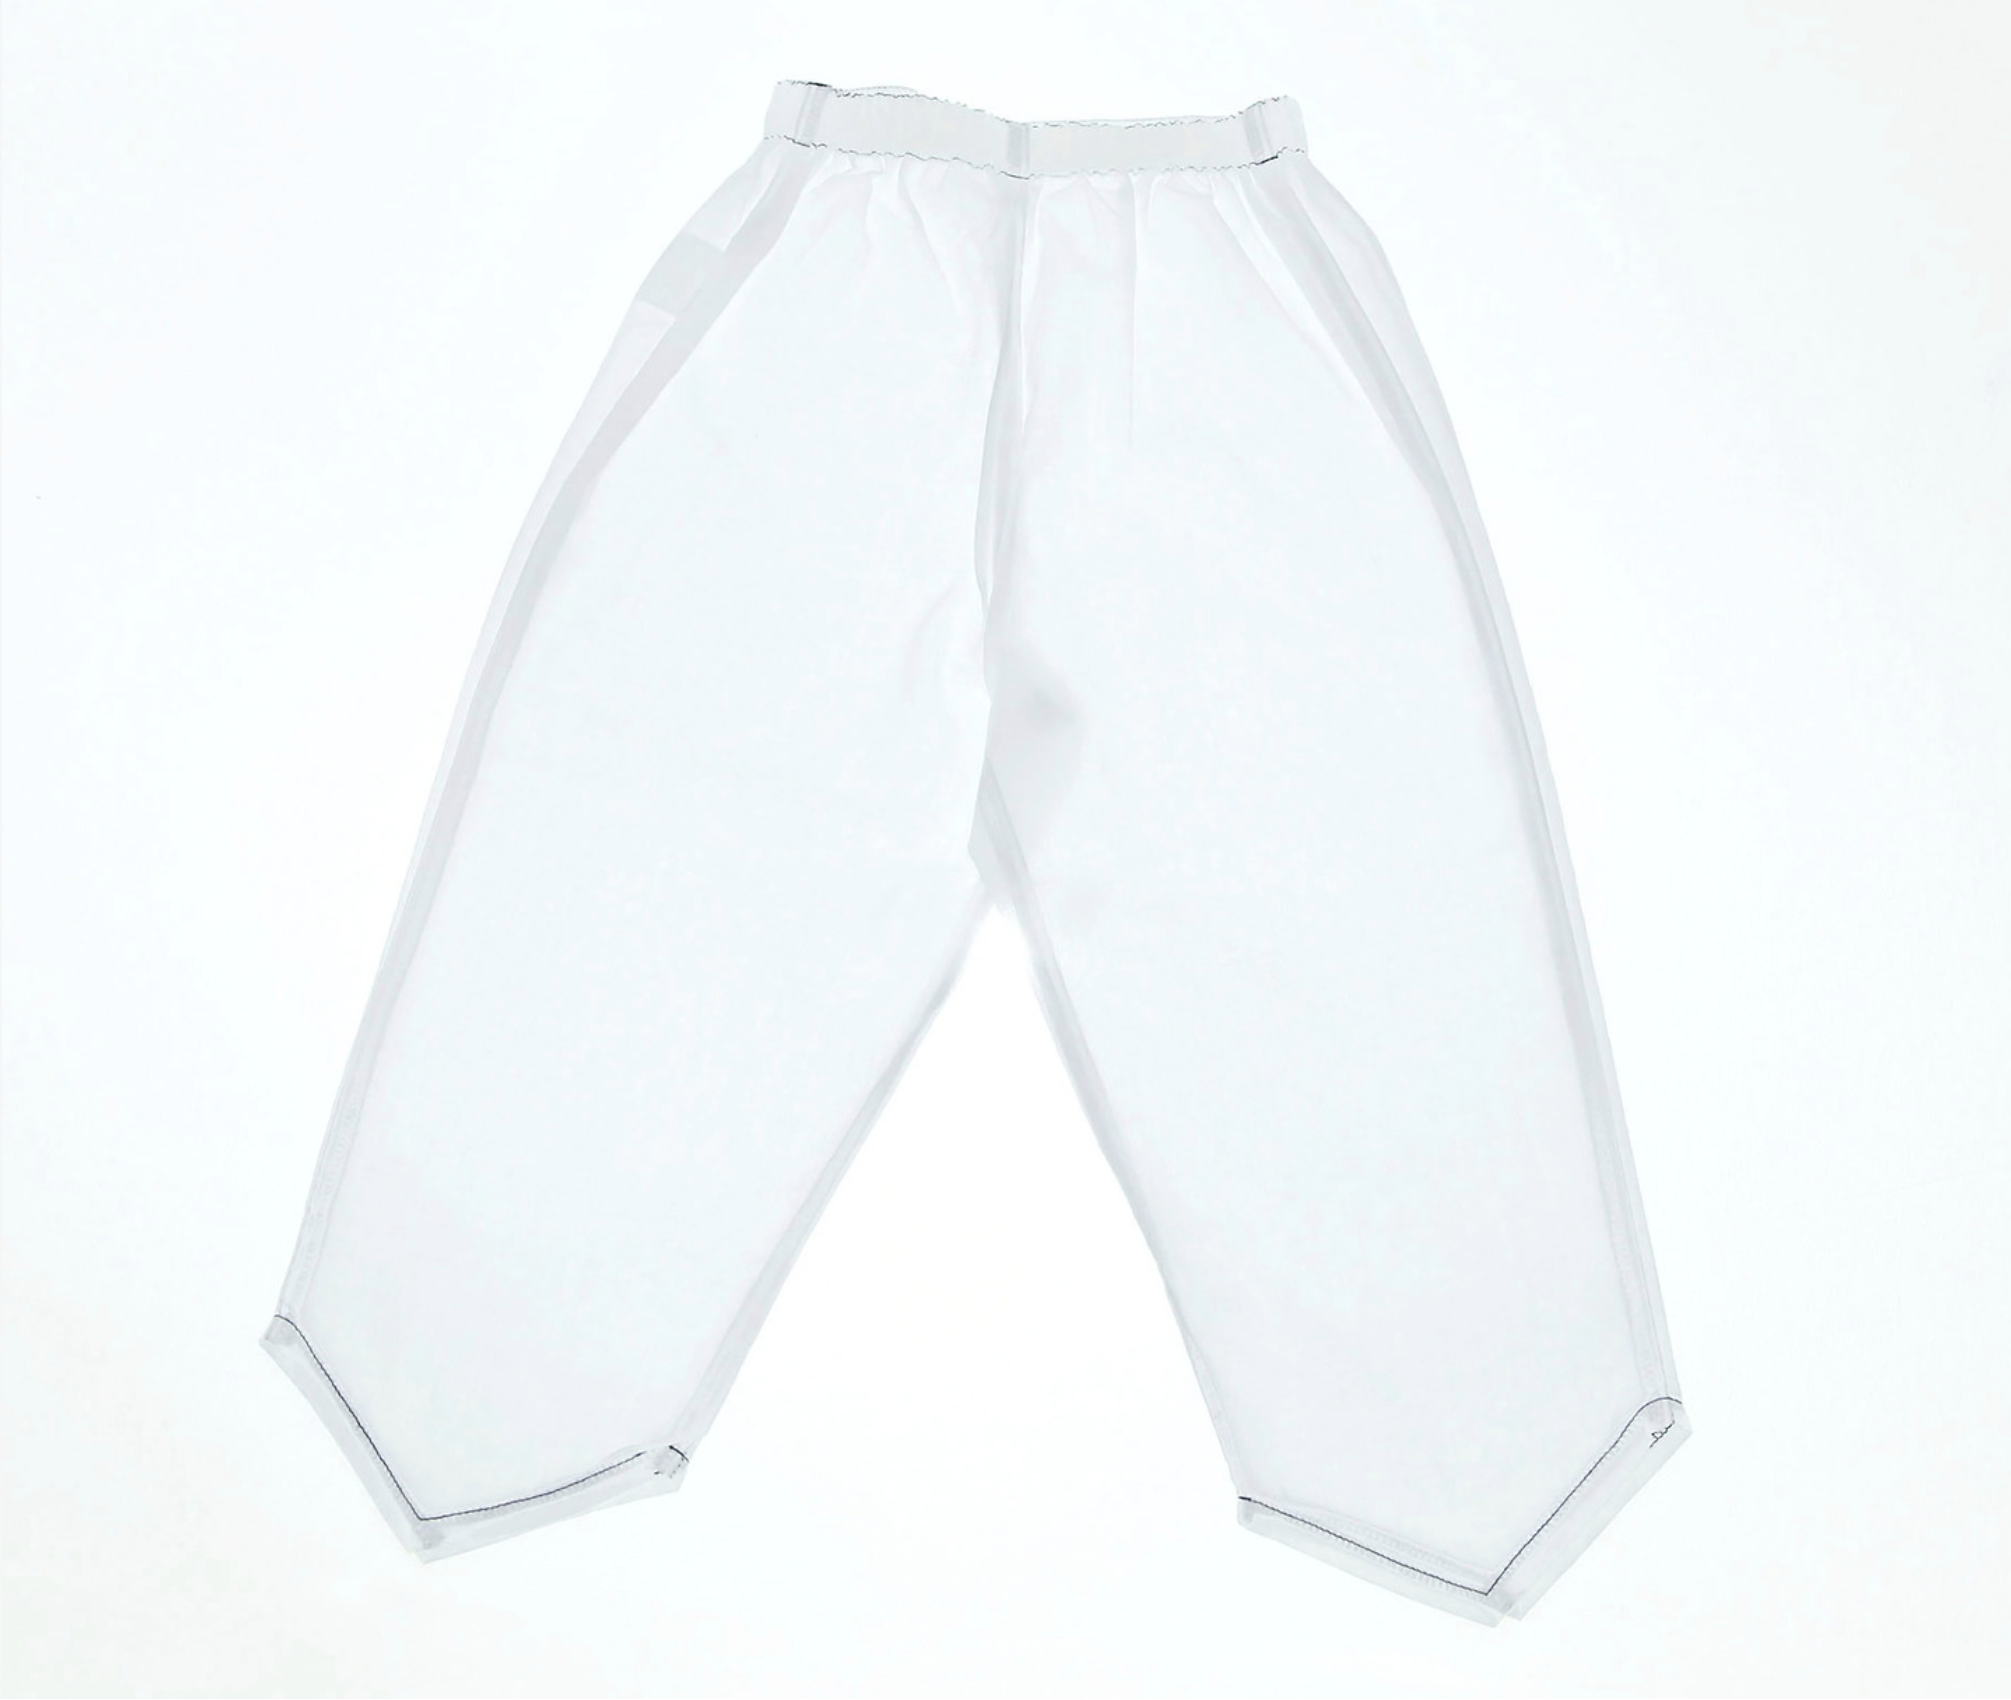 Transparent pair of trousers